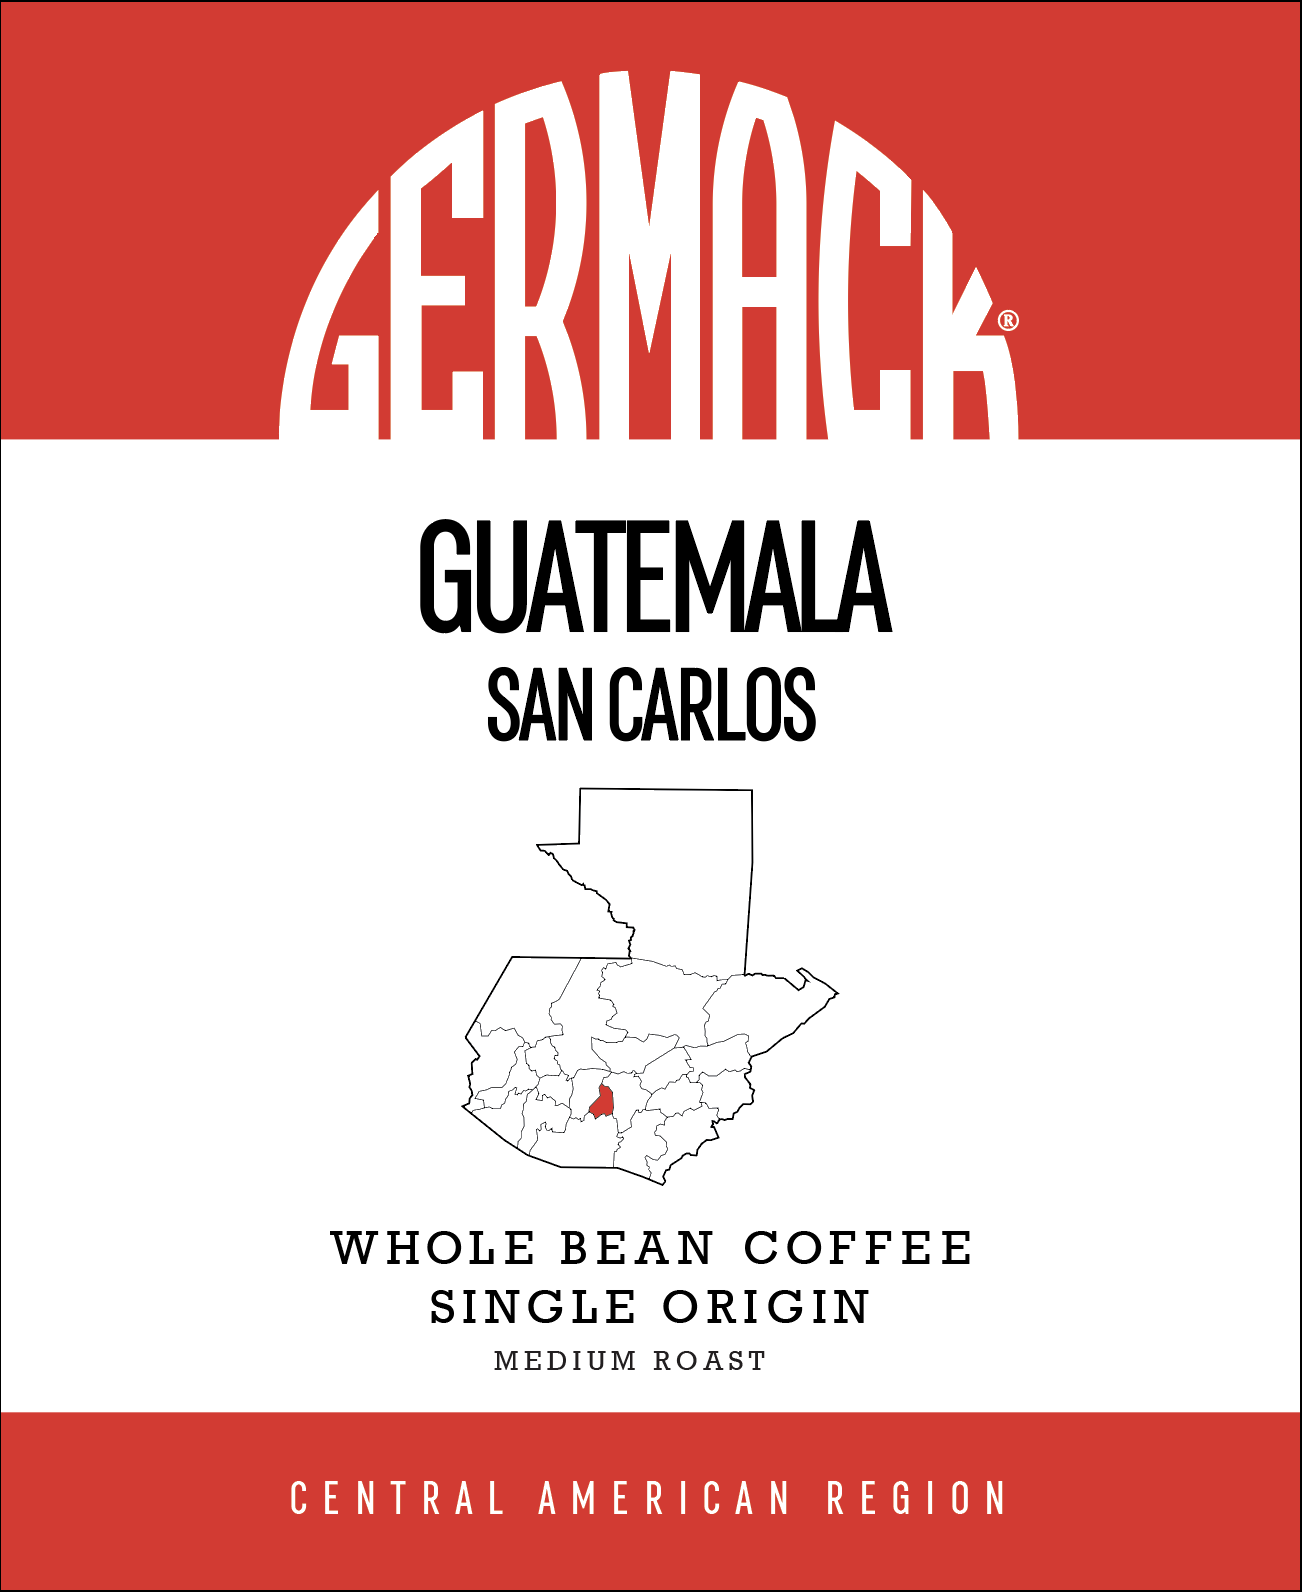 Picture Germack Coffee (5 LB.) - Guatemala San Carlos